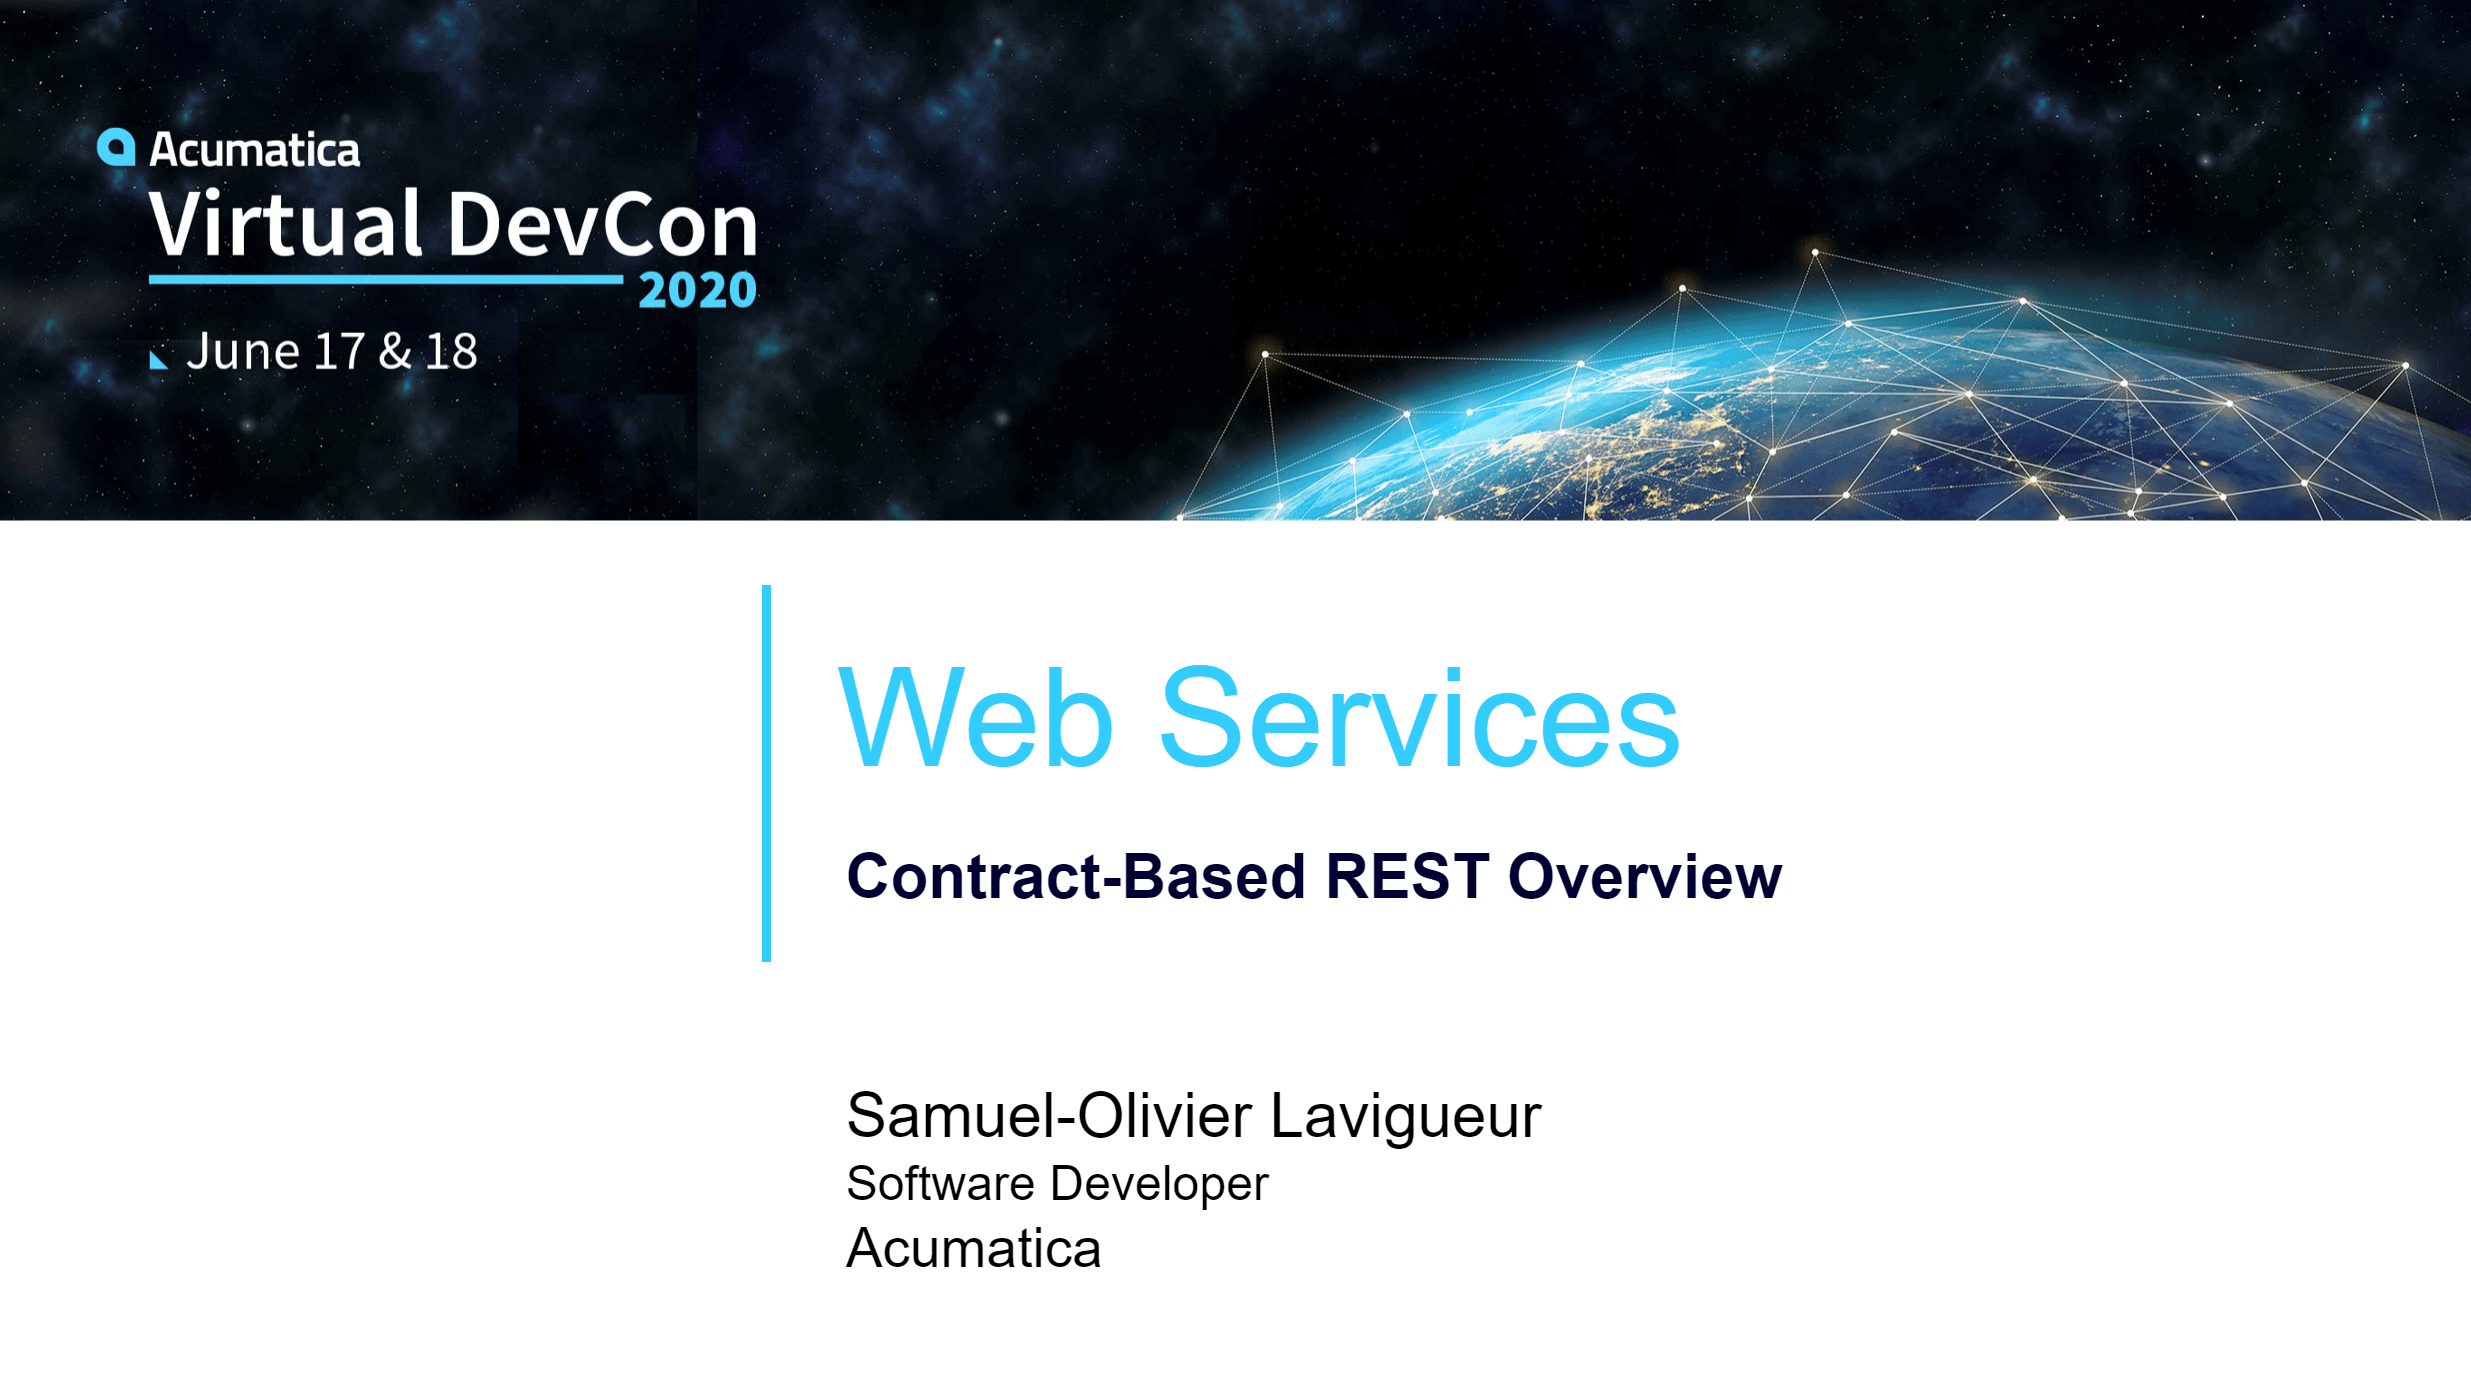 DevCon 2020 - Web Services - Contract-Based REST Overview